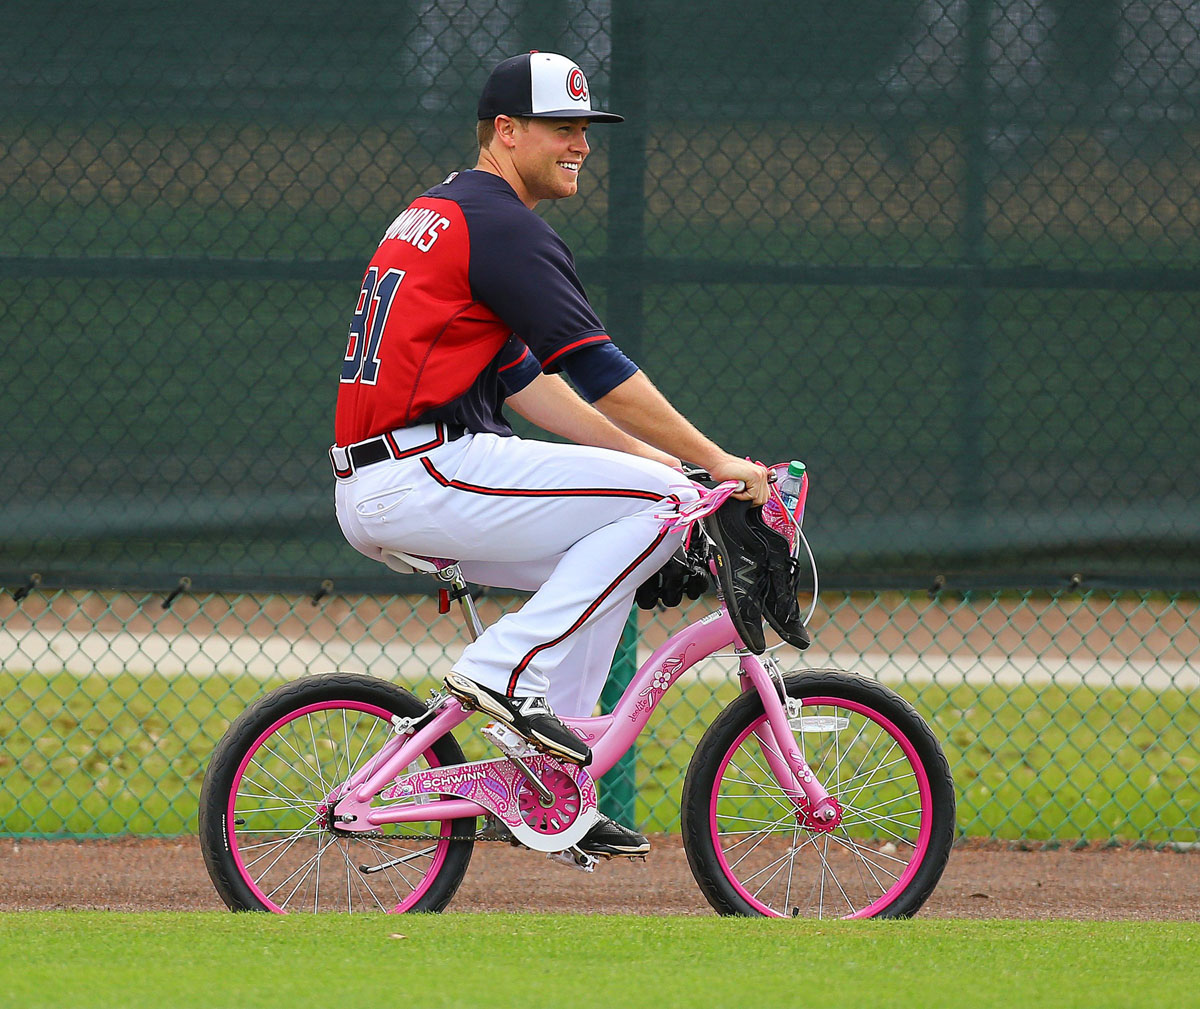 Countdown to Opening Day: The best of spring training